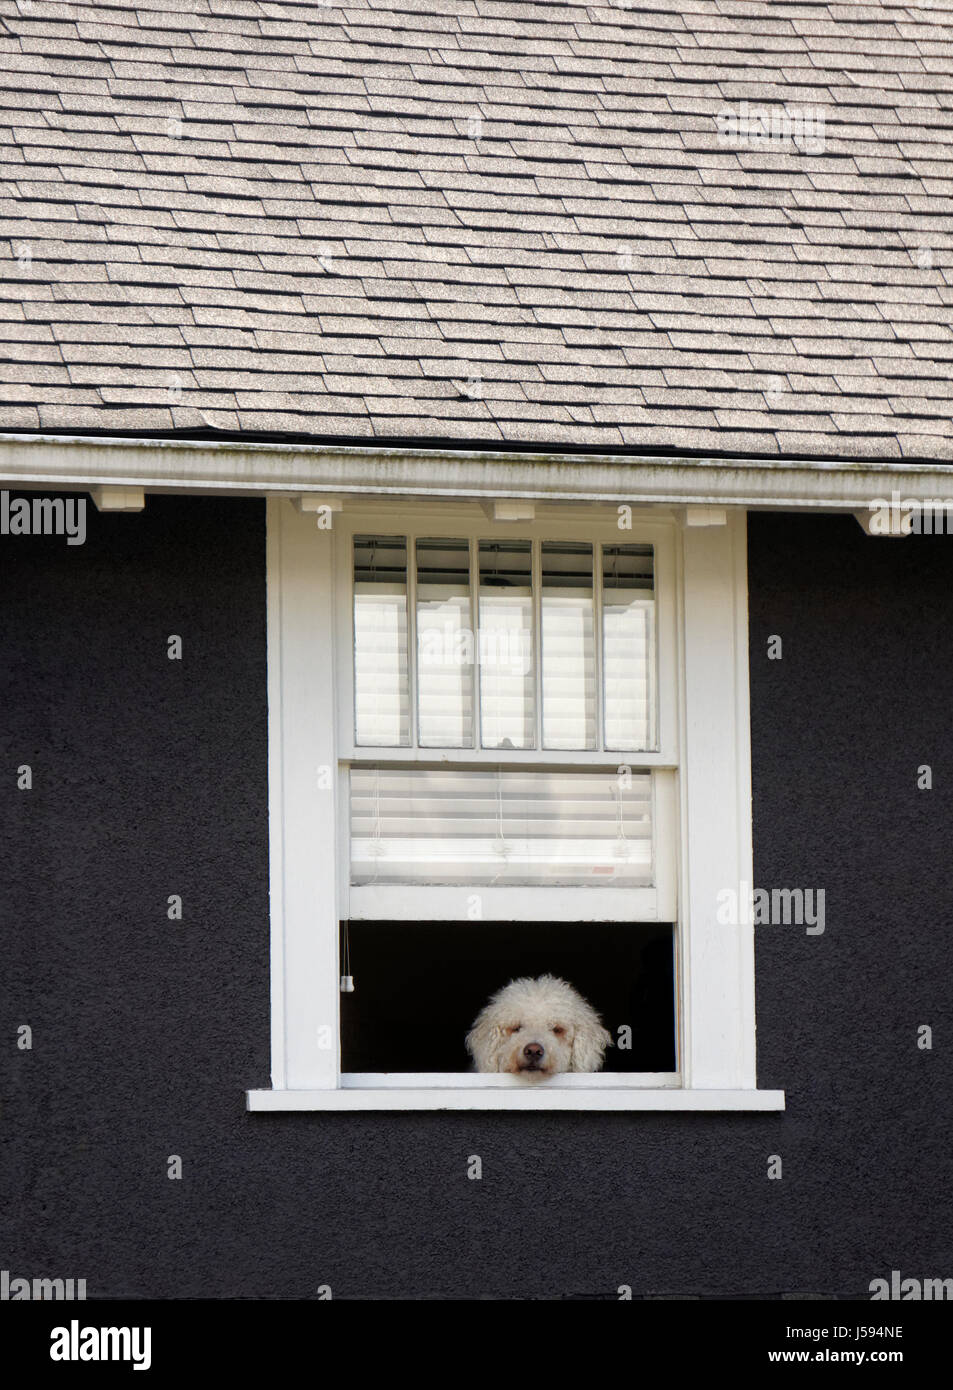 shaggy-white-dog-peering-out-of-the-wind